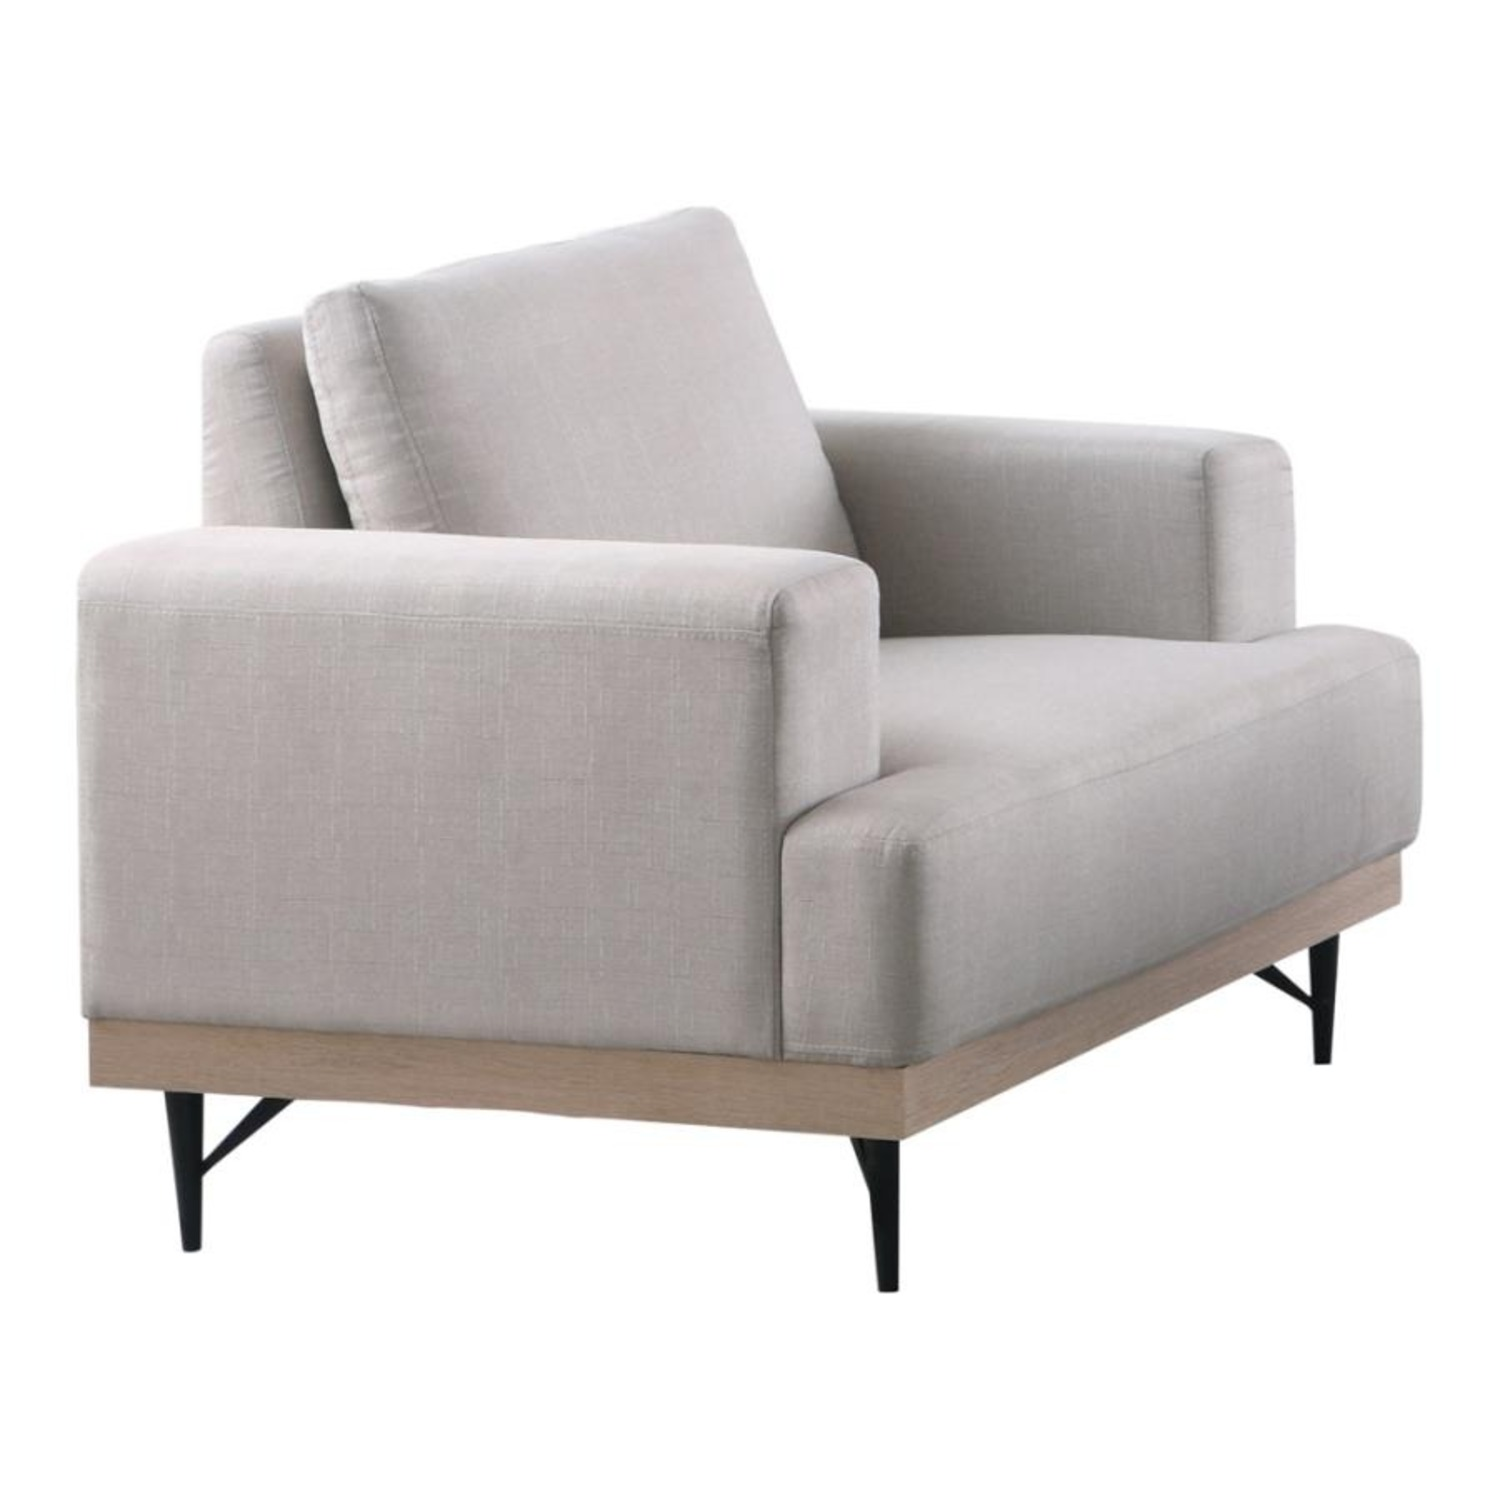 Chair In Beige Faux Linen W/ Pocket Coiled Seating - image-0